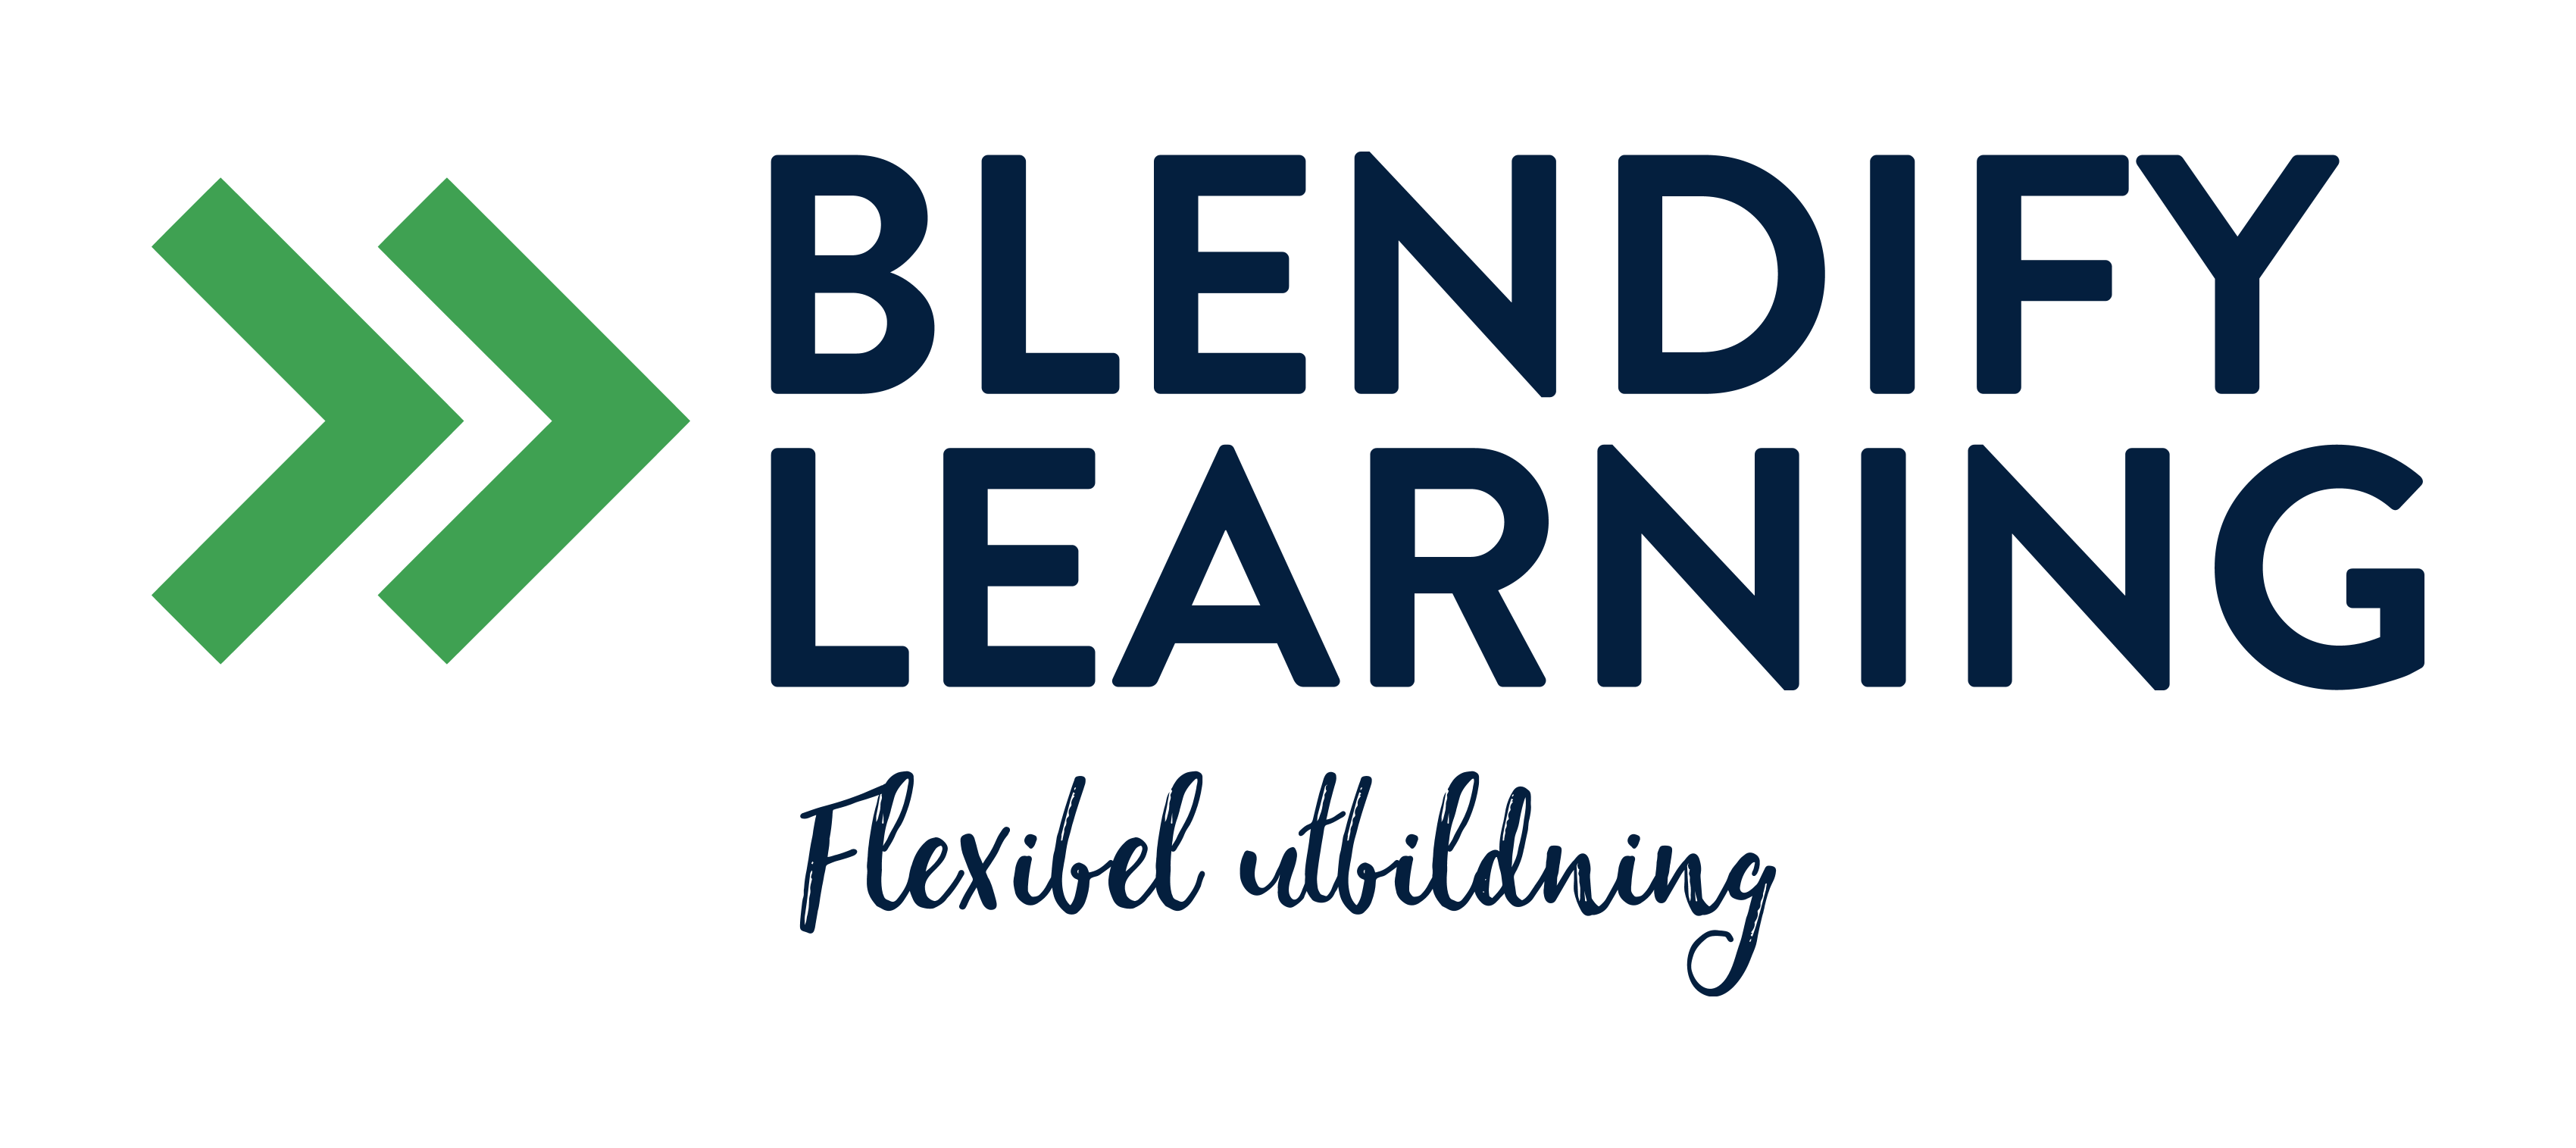 www.blendifylearning.com